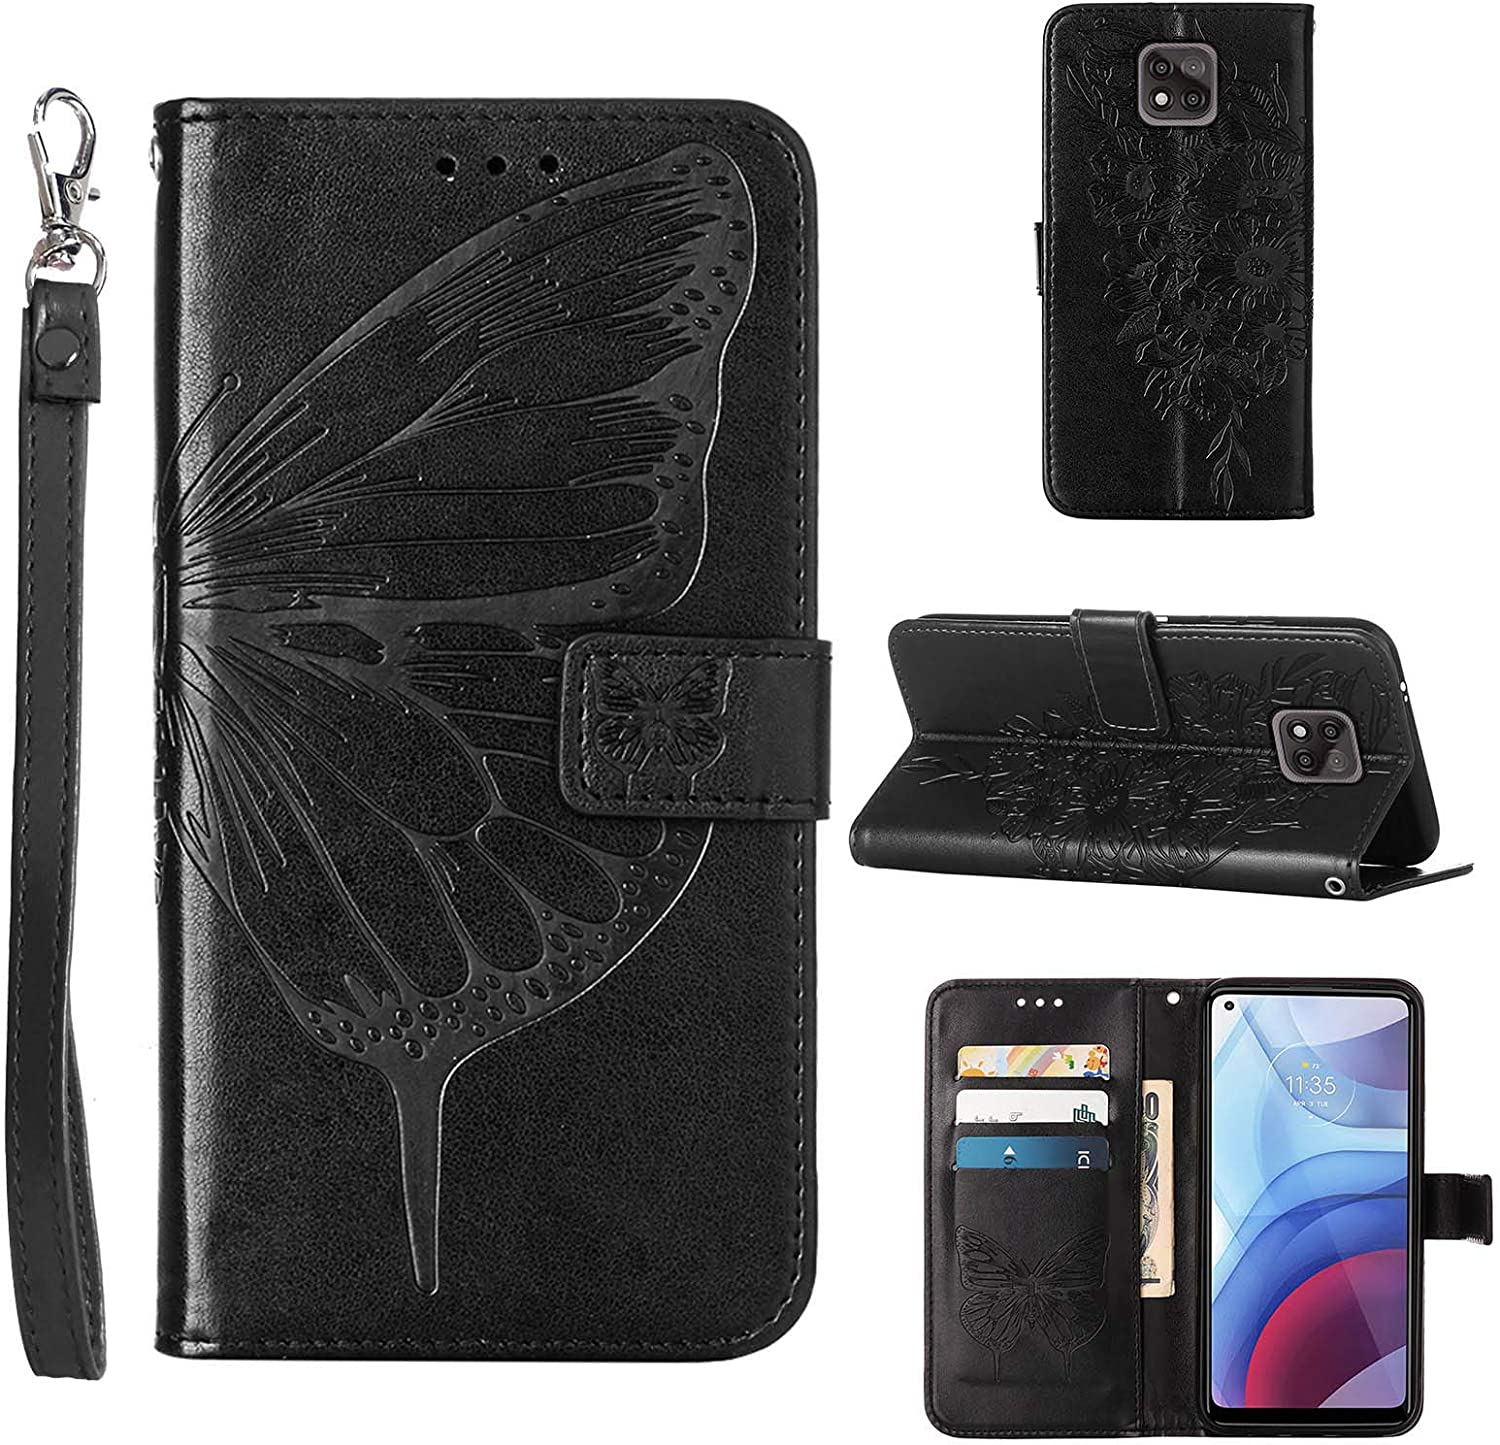 Compatible for Moto G Power 2021 Case Wallet,[Kickstand][Wrist Strap][Card Holder Slots] Butterfly Floral Embossed PU Leather Flip Protective Cover for Moto G Power (2021) Case (Black)